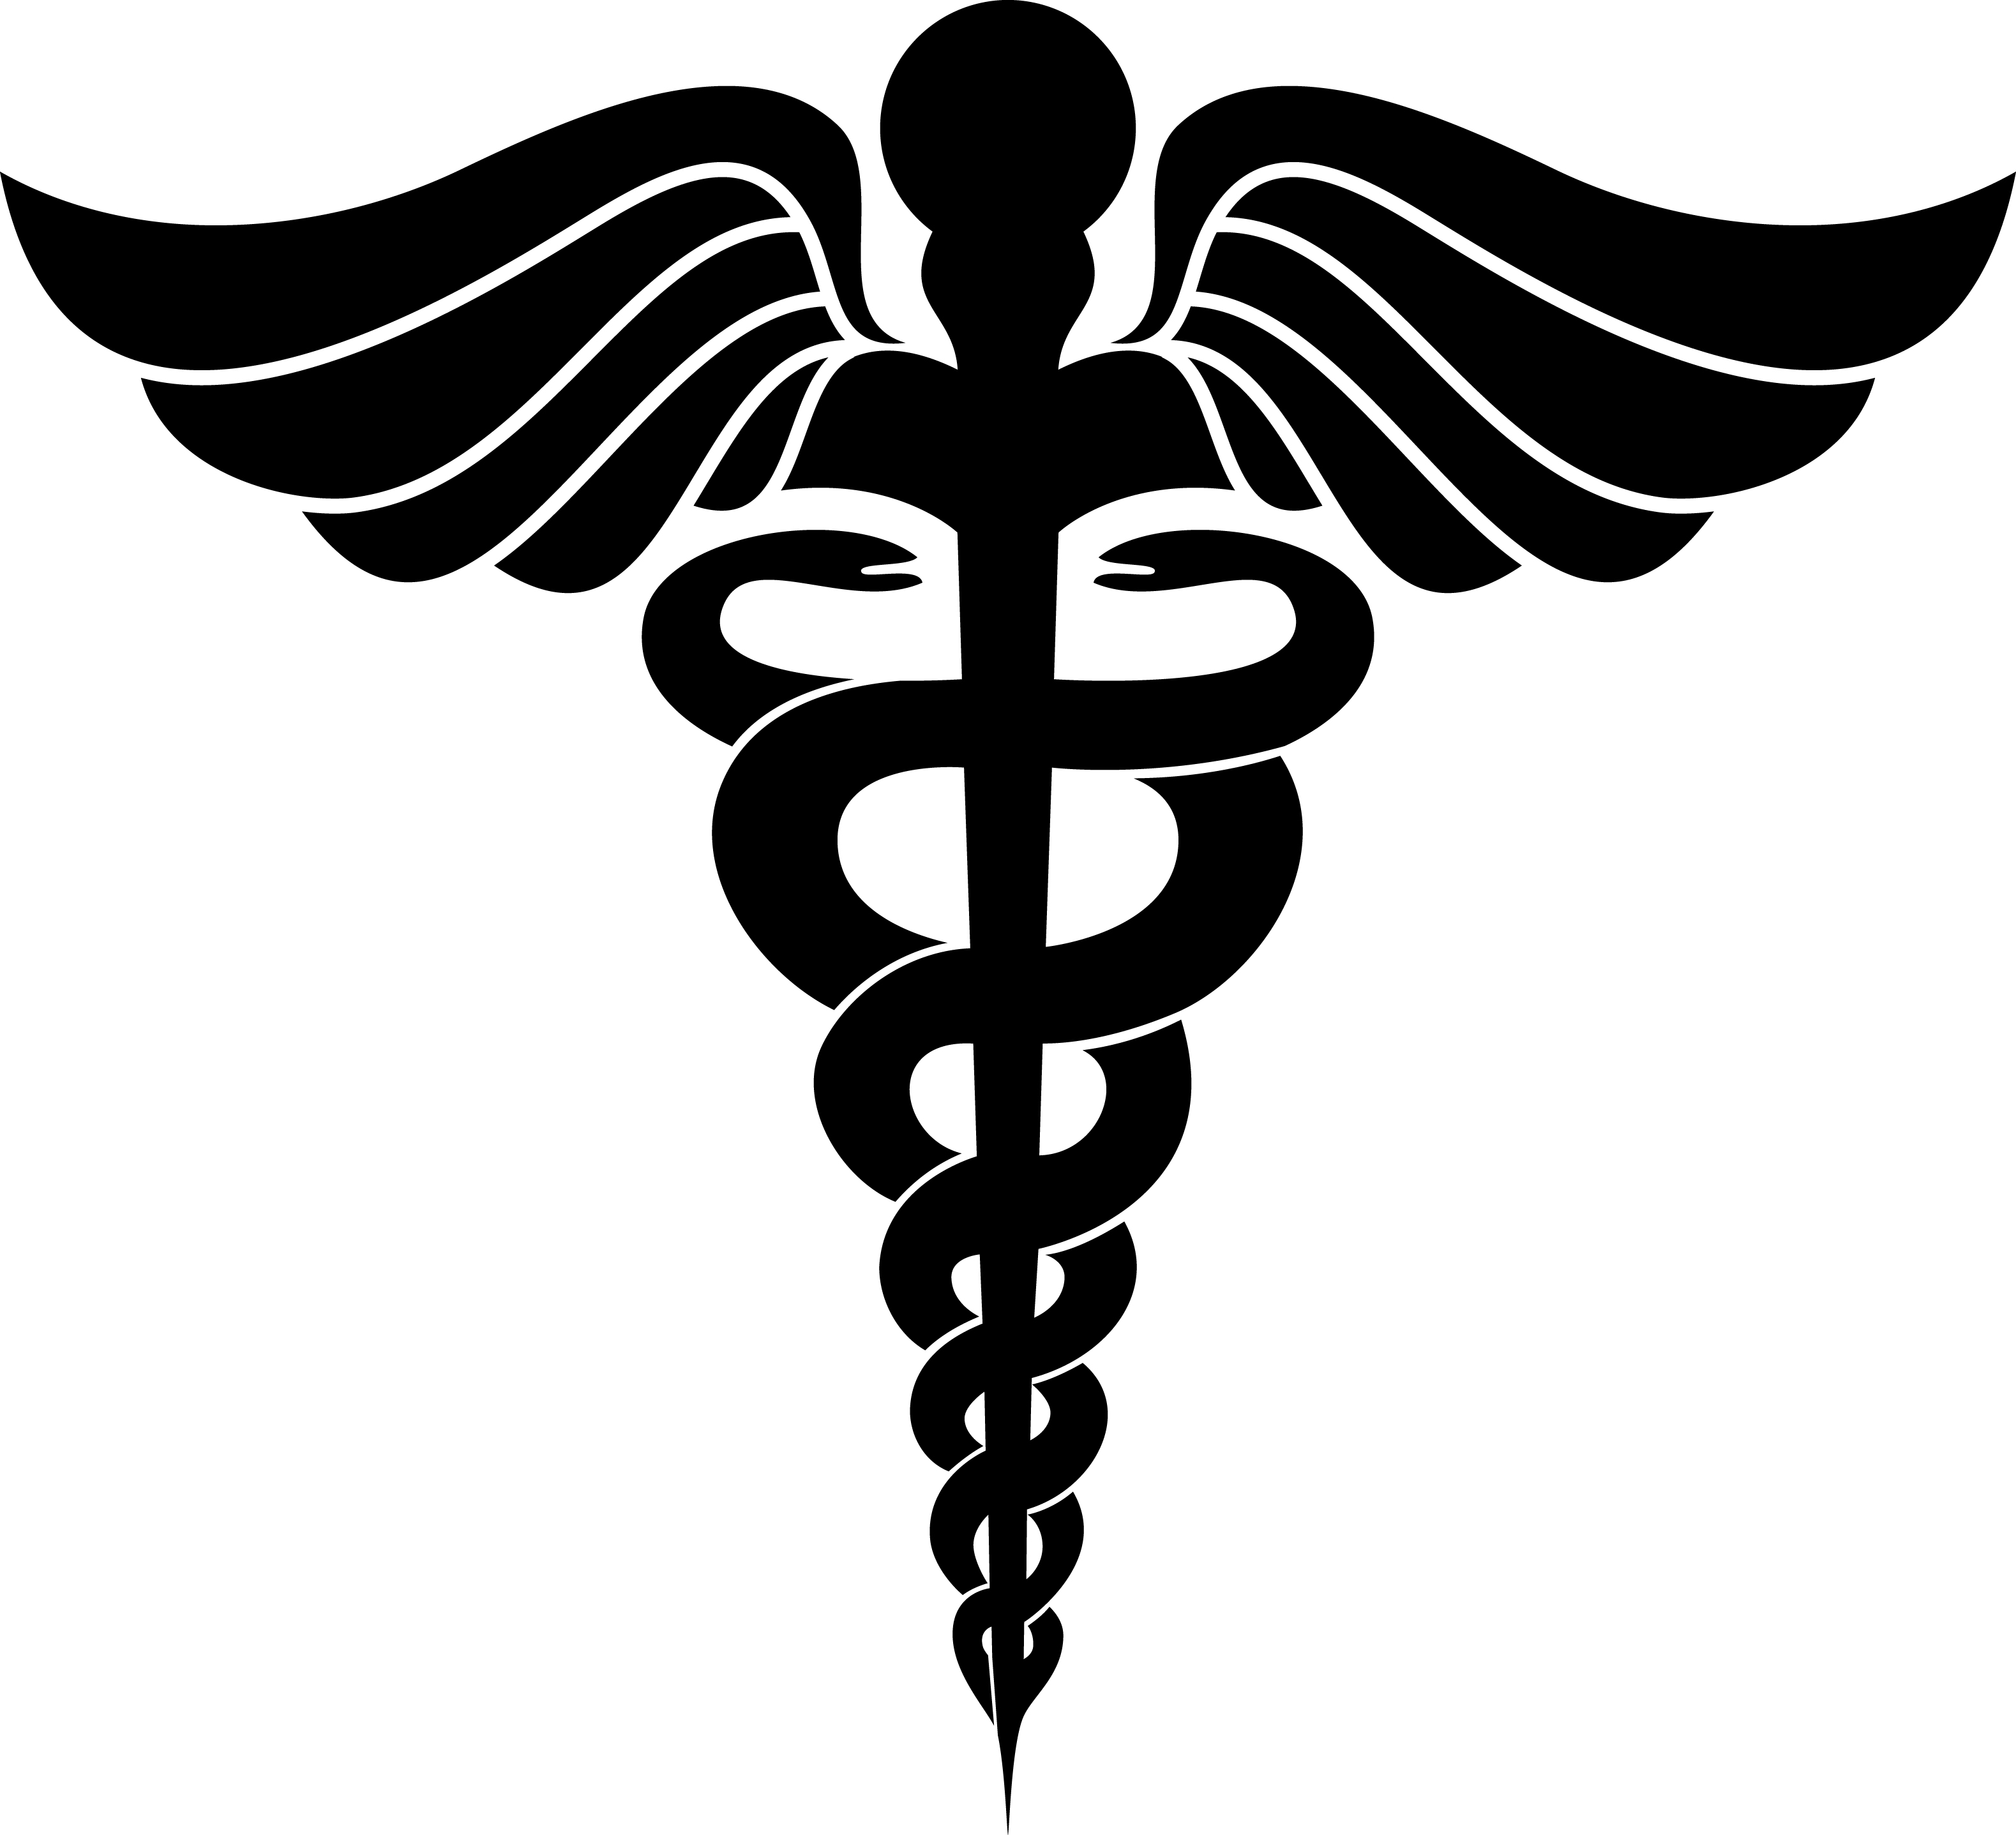 Free Medical Symbol Cliparts, Download Free Clip Art, Free Clip Art.